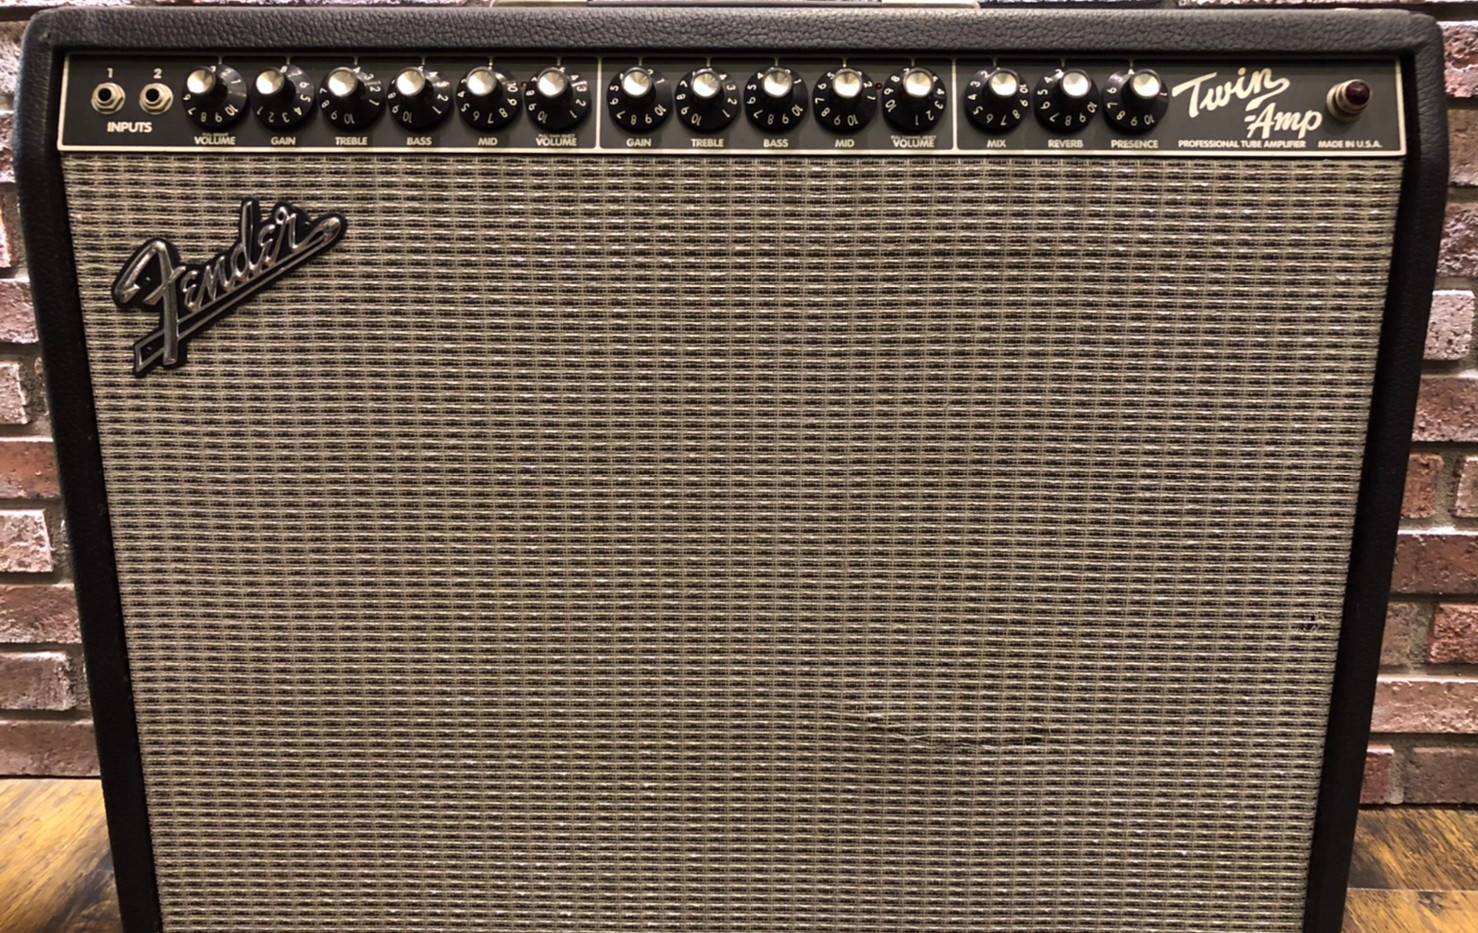 Fender Twin Amp修理中